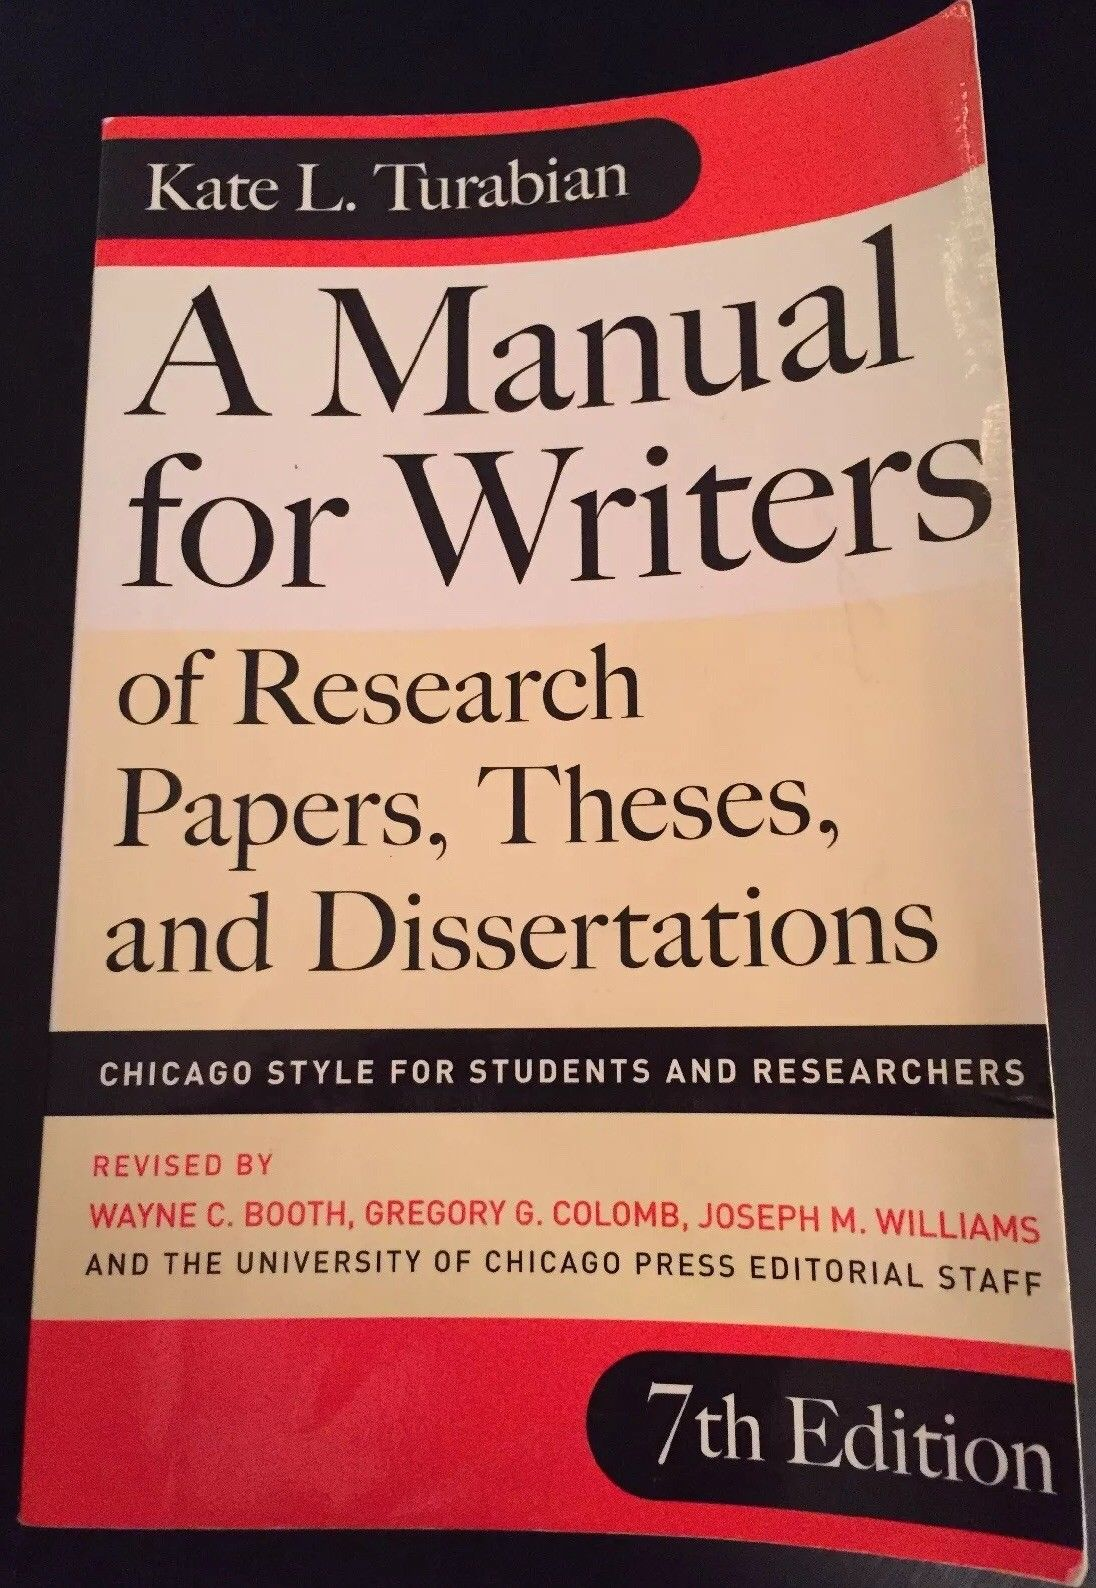 018 Research Paper Manual For Writers Of Papers Theses And Dissertations S Magnificent A Amazon 9th Edition Pdf 8th 13 Full